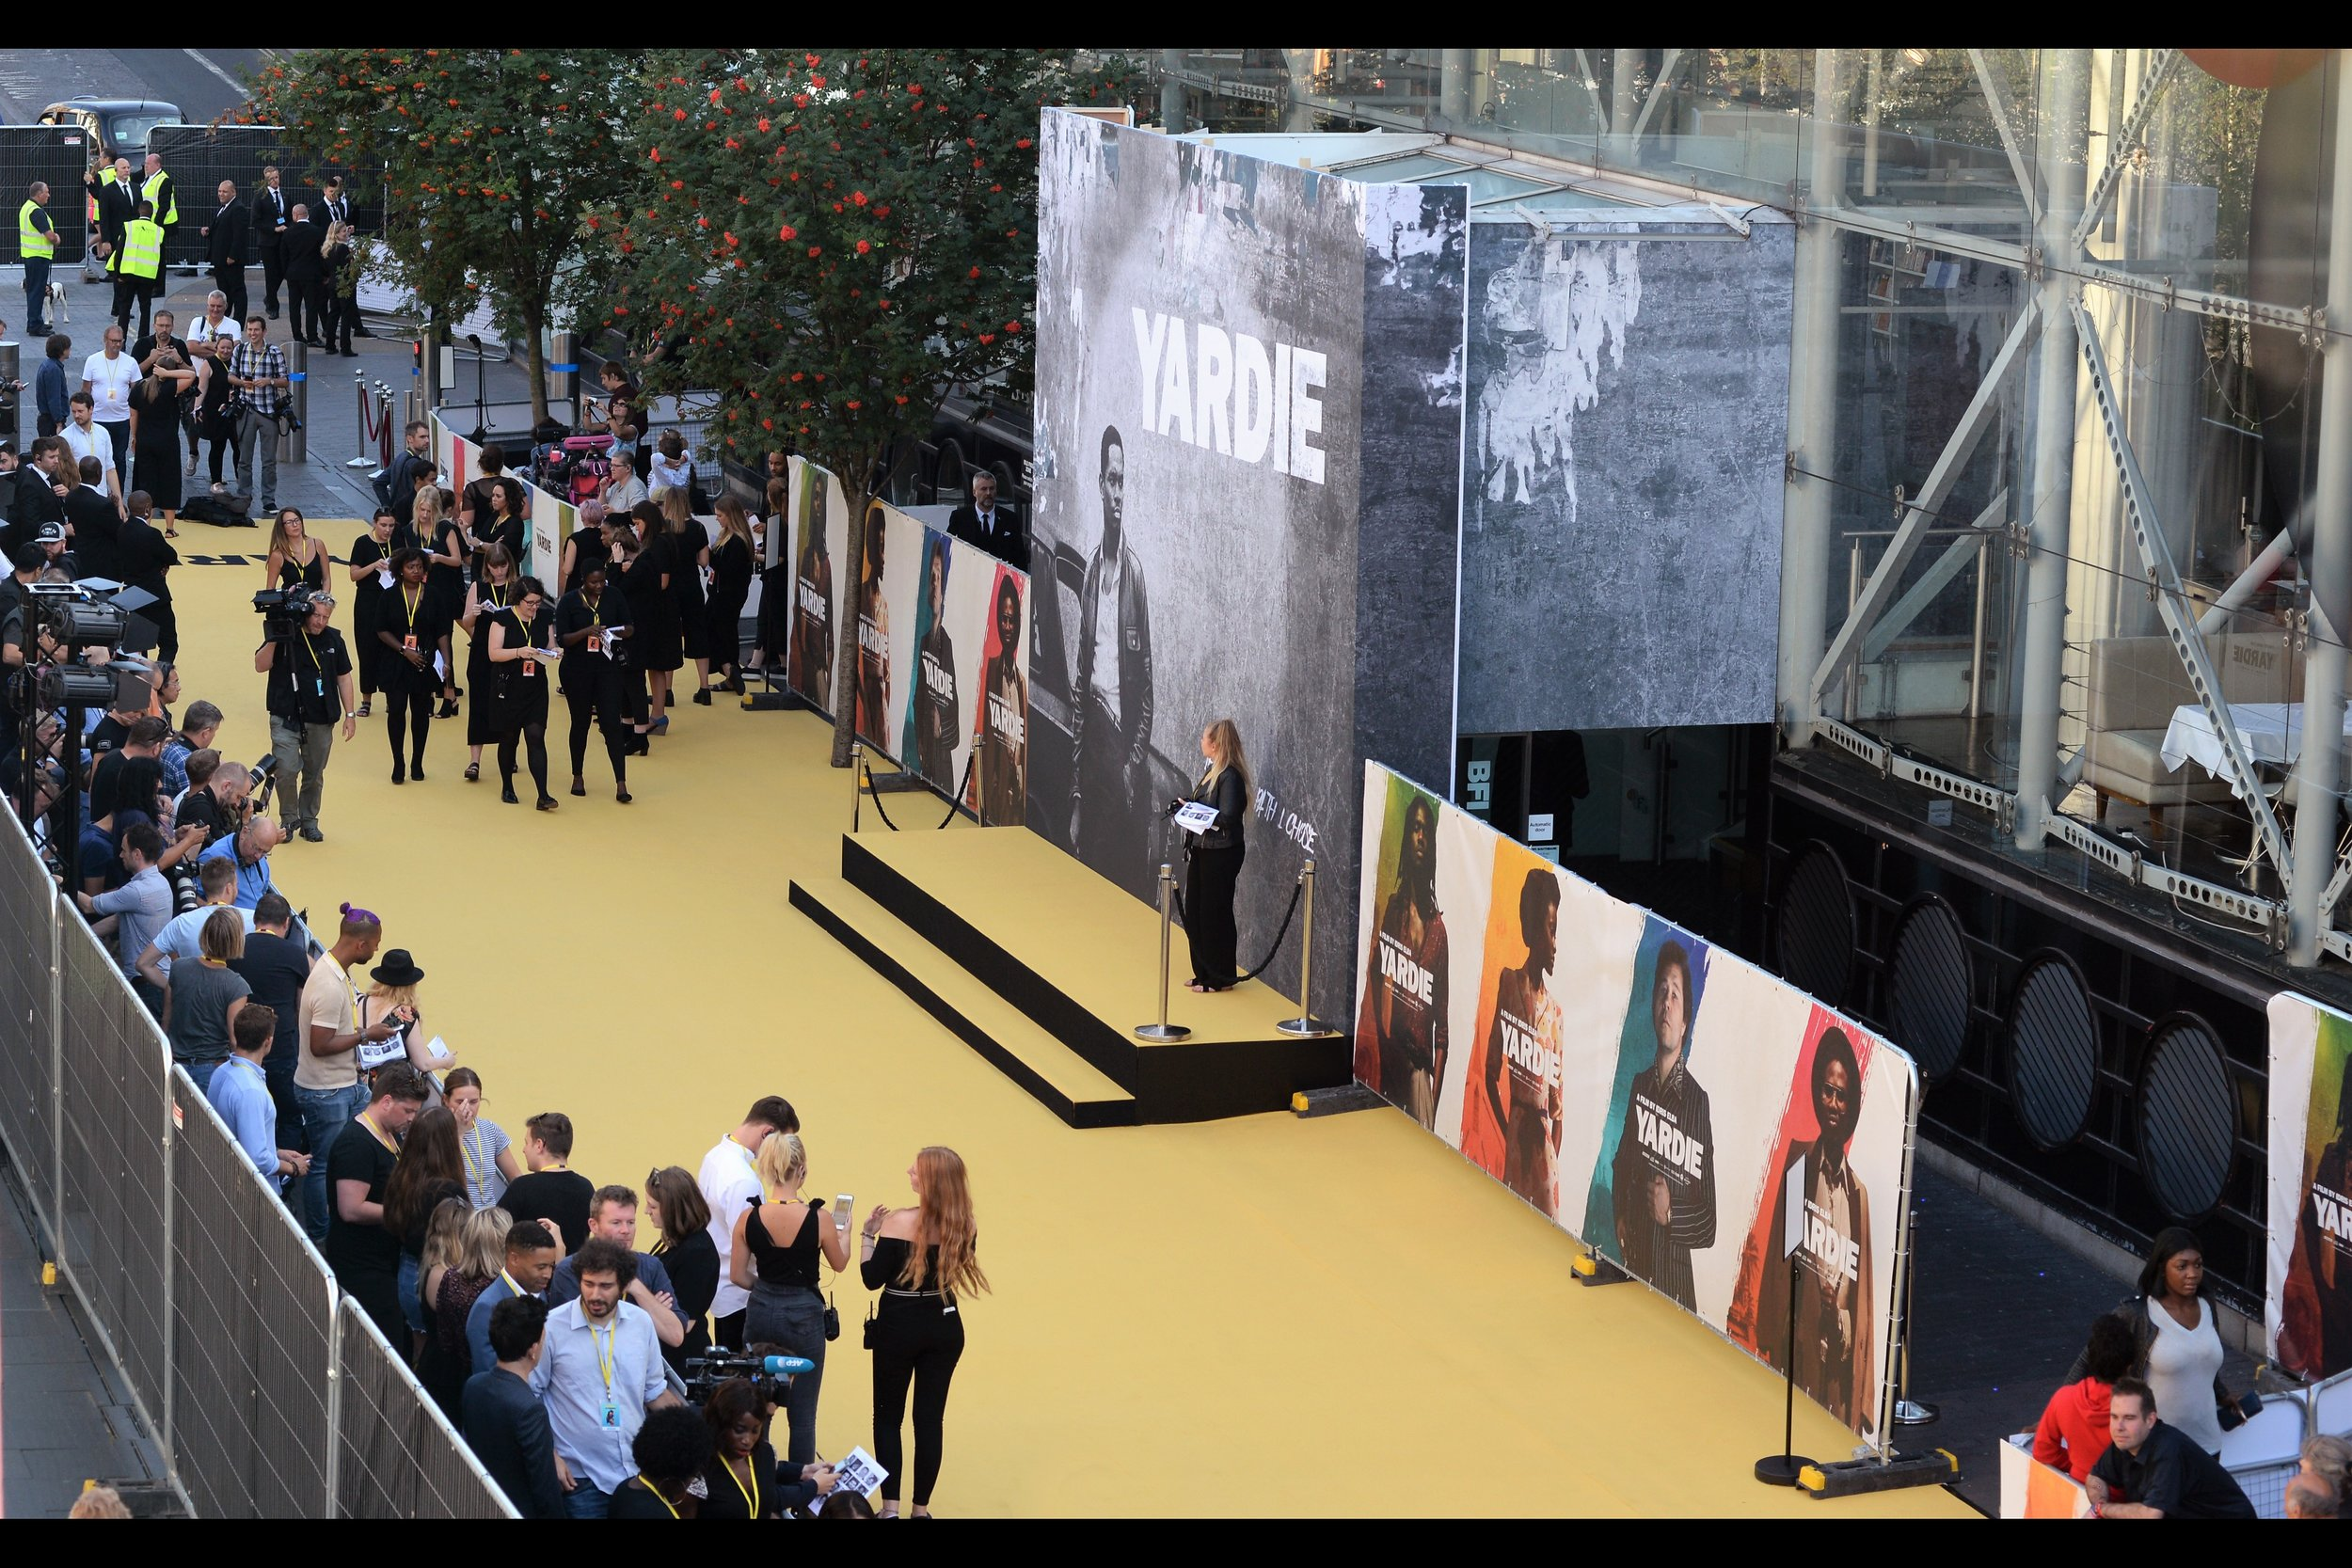 I generally prefer to be in a public pen for premieres, but in this case the alignment of the stage and media meant that the best place to photograph the premiere... was outside the premiere.